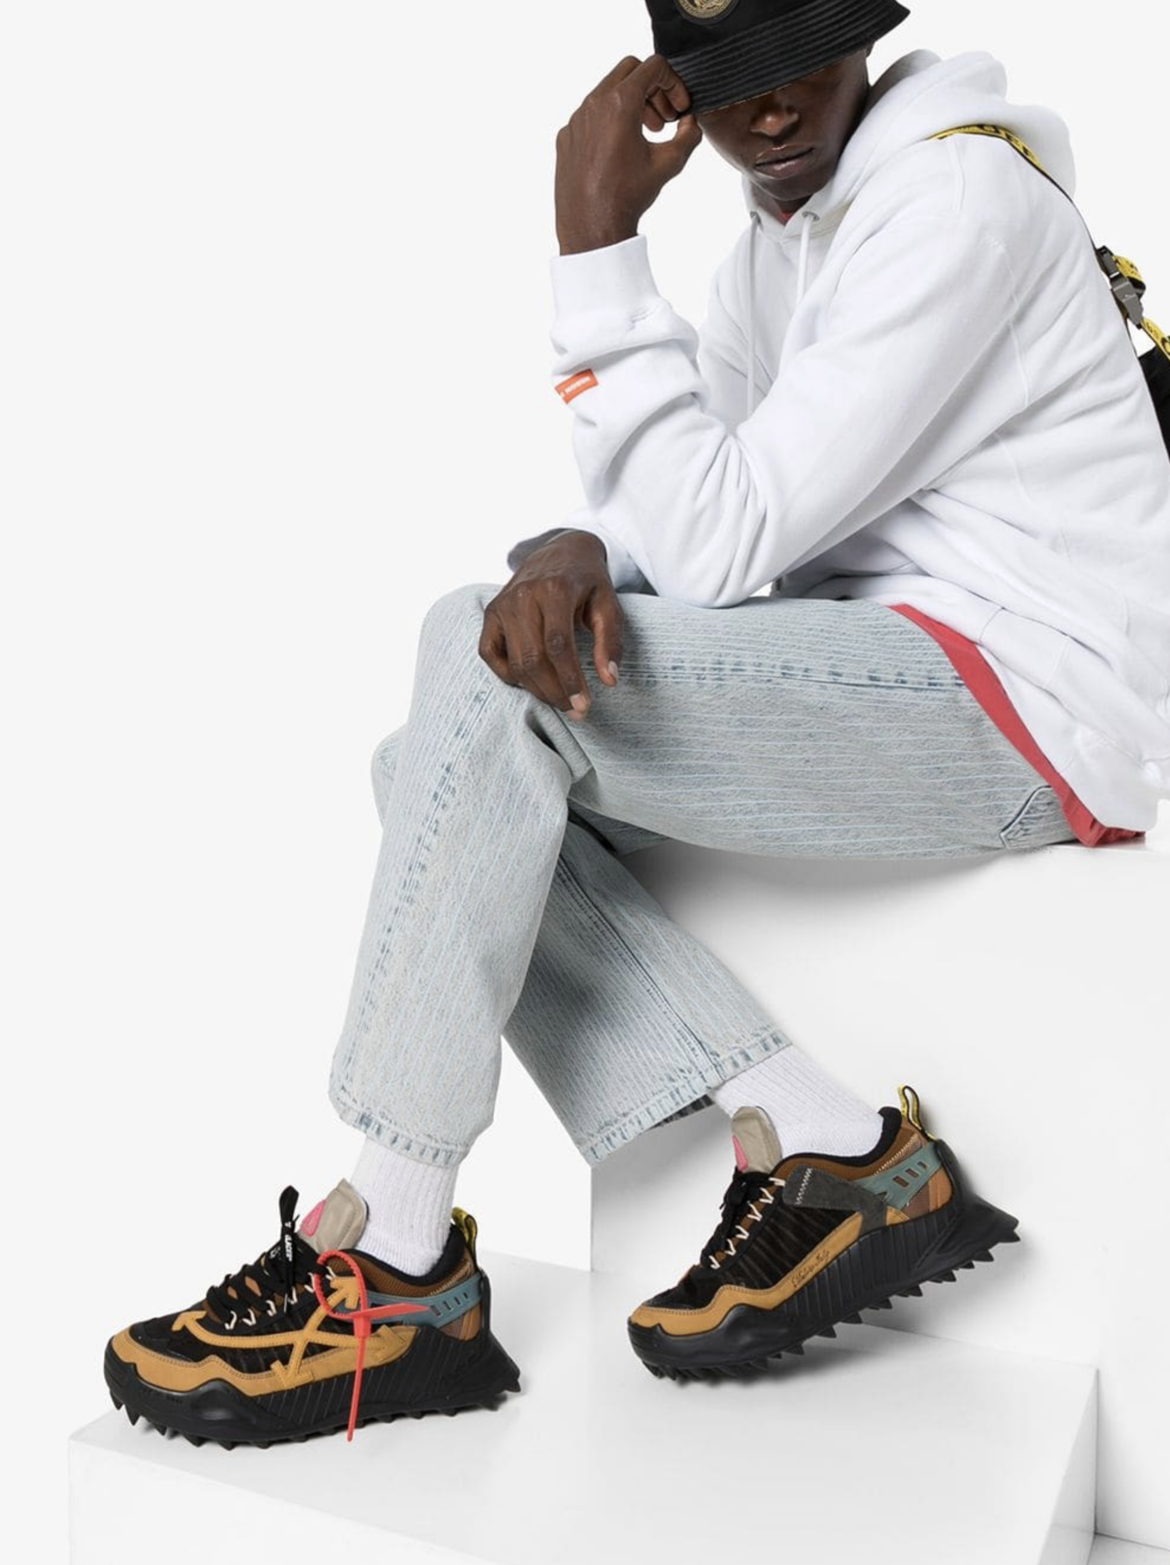 OFF-WHITE Odsy-1000 low-top sneakers HK$6,365 from farfetch